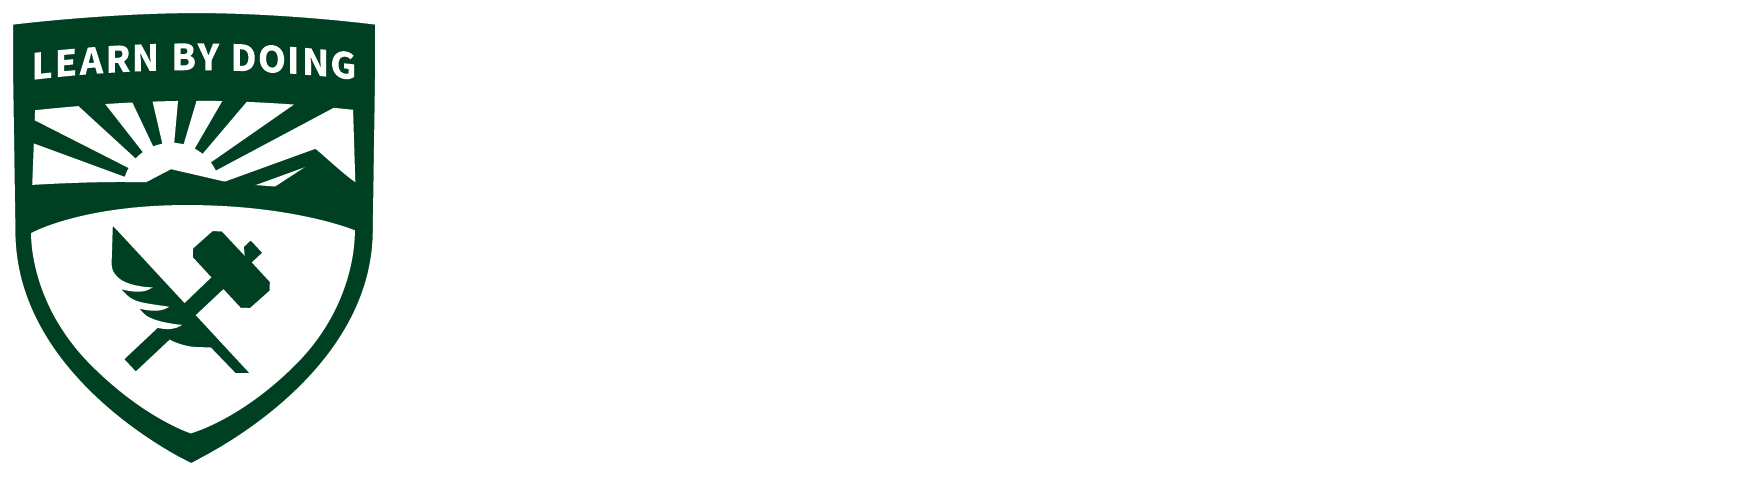 Accounting and Law Area – Orfalea College of Business